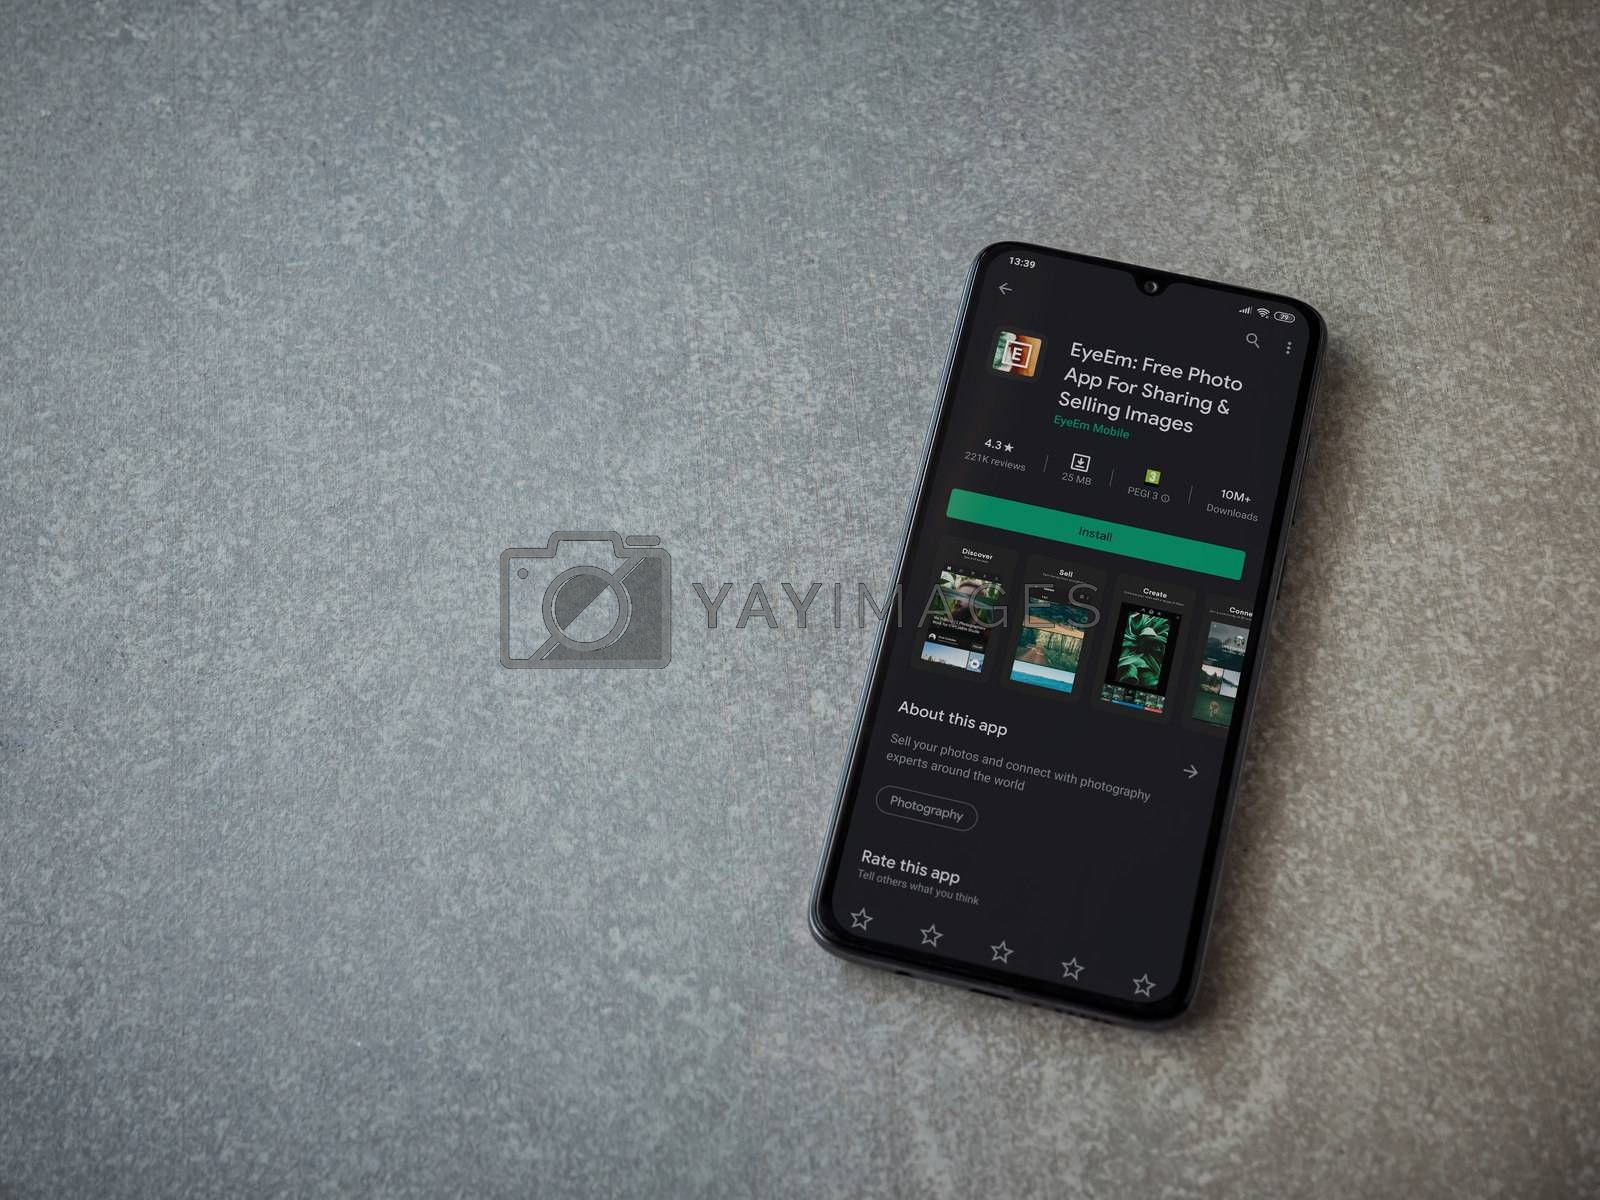 Lod, Israel - July 8, 2020: EyeEm - Sharing and Selling Images app play store page on the display of a black mobile smartphone on ceramic stone background. Top view flat lay with copy space.